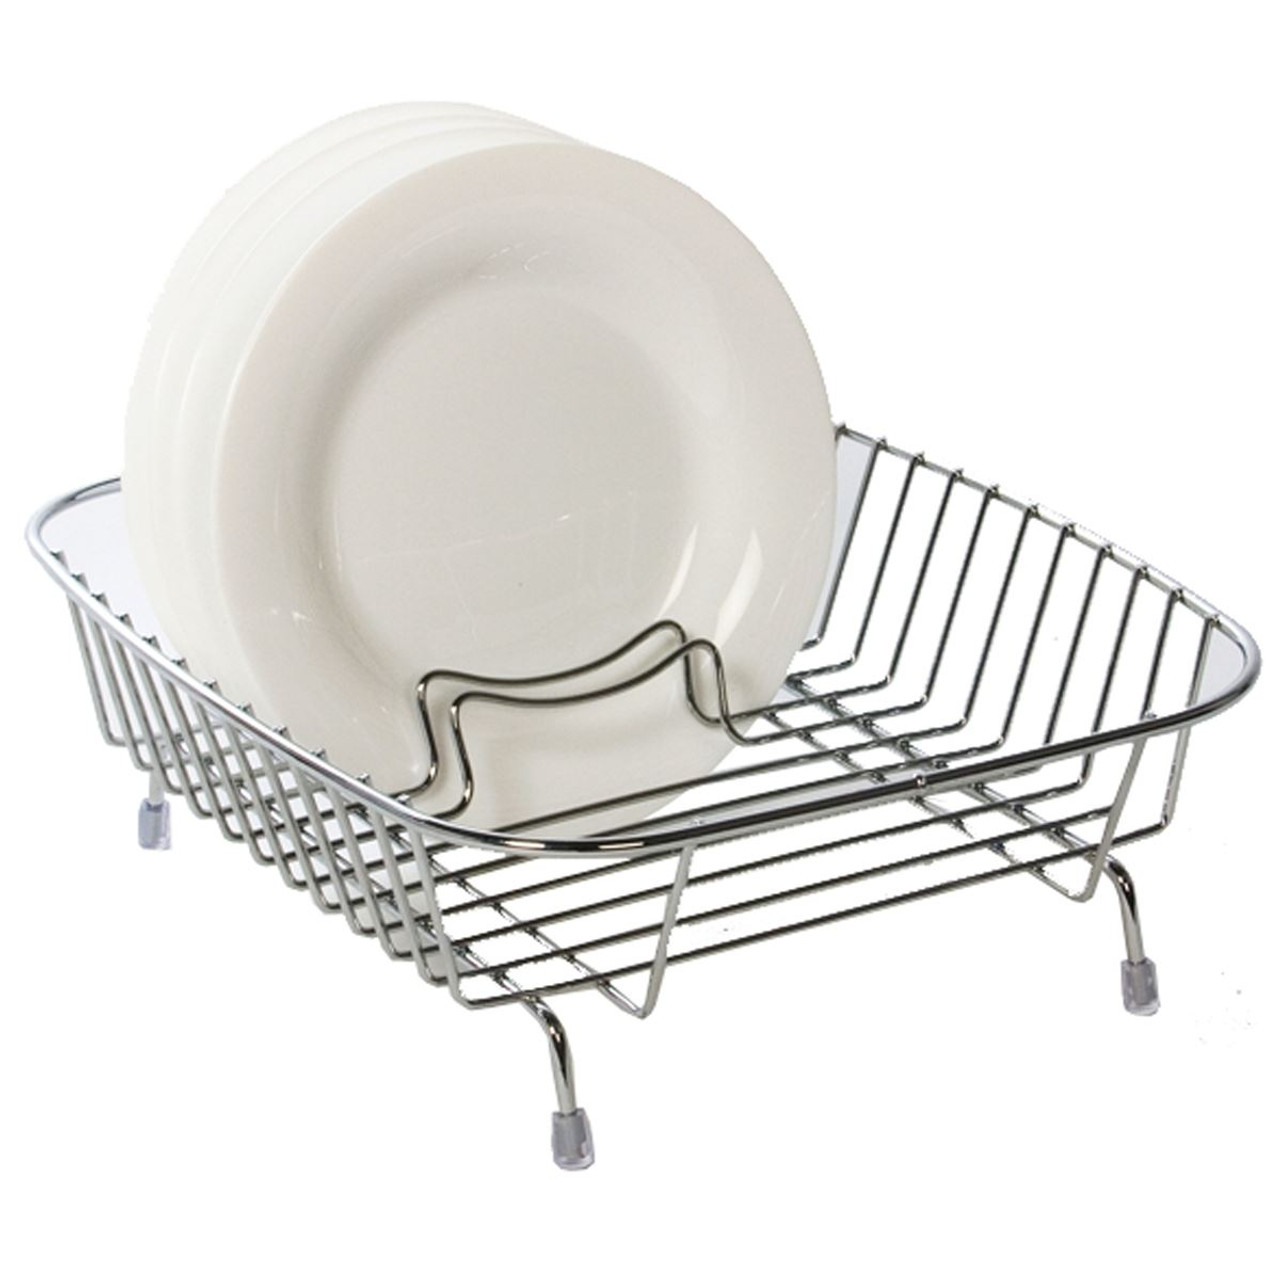 Delfinware Compact Dish Drainer Stainless Steel